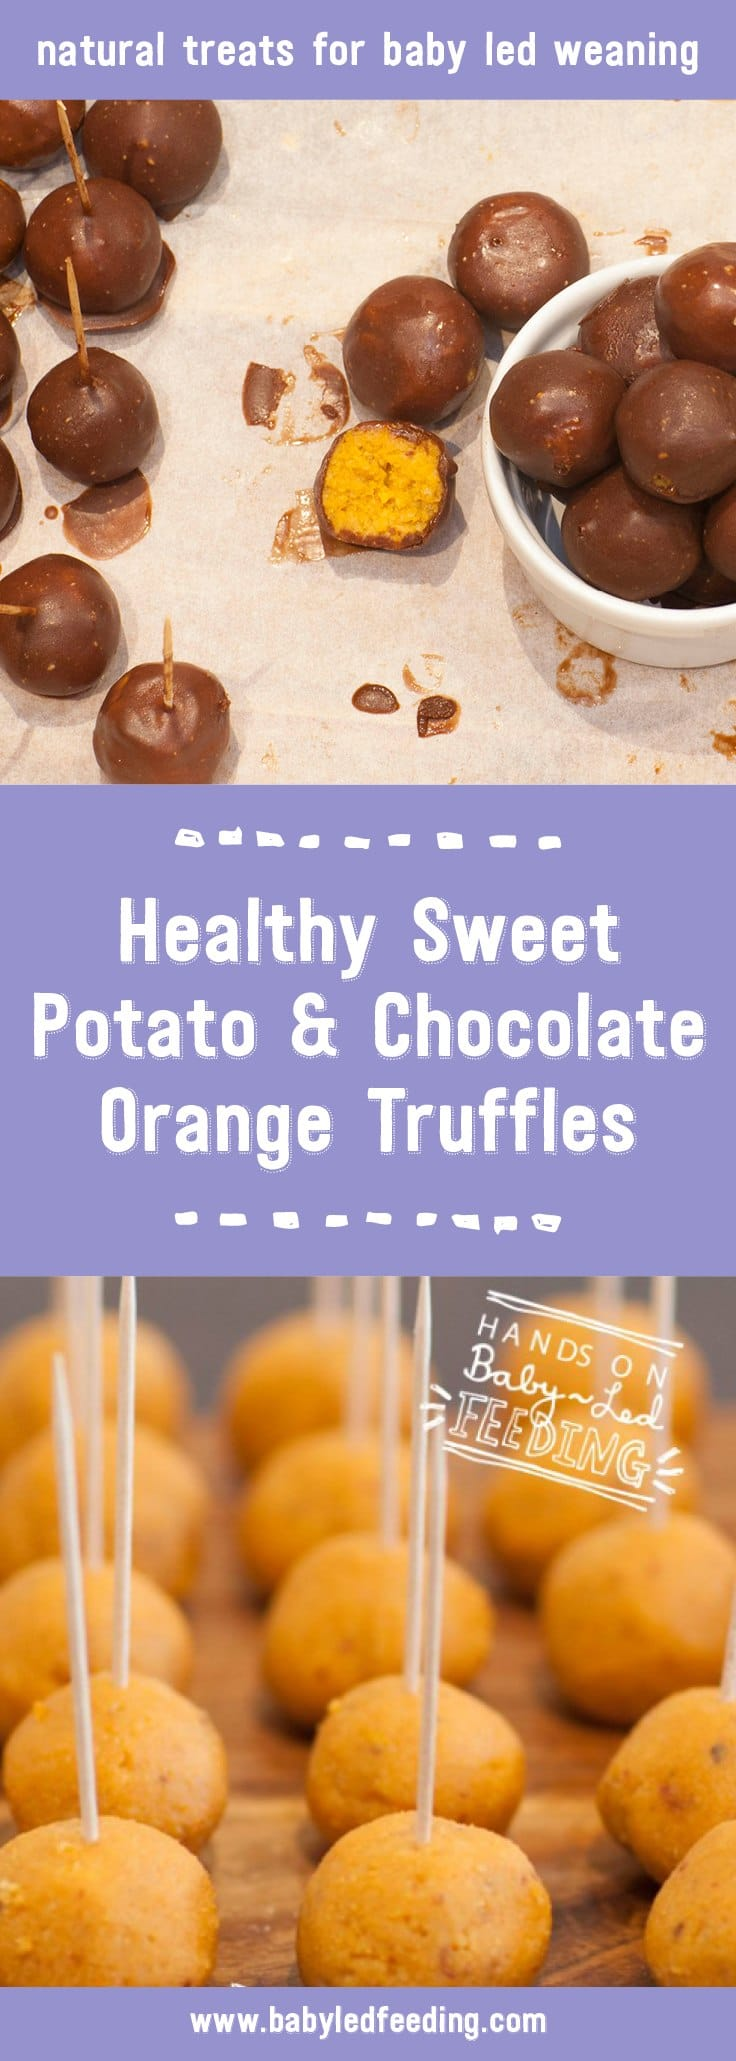 Sweet Potato & Orange Chocolate Truffles -Vegan & Refined Sugar Free. Roasted sweet potato, sweet dates, fragrant orange oil, orange juice, coco, with optional cashew butter. These make a delicious healthy snack for toddlers, moms, and dads! Use as a sweet appetizer or a healthy dessert. These babies are freezer friendly making this an easy make ahead recipe. #truffles #vegan #makeahead #babyledweaning #babyledfeeding #sweetpotato